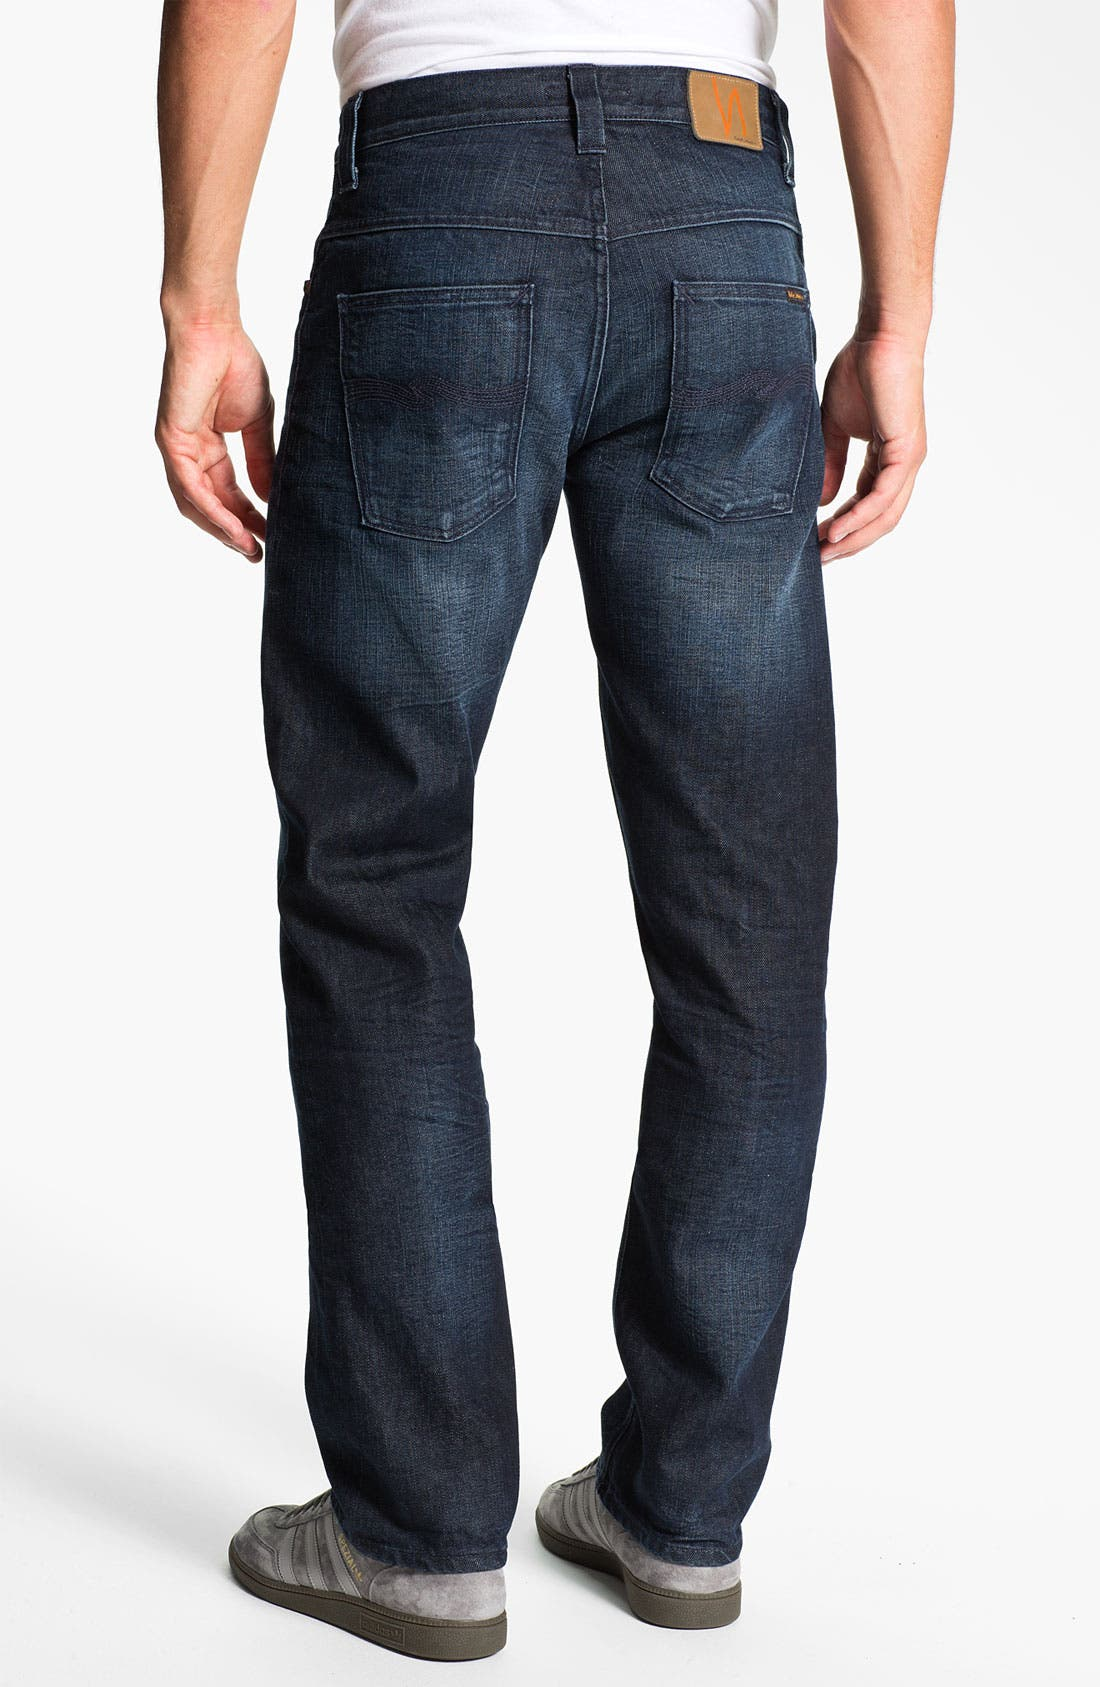 Alternate Image 1 Selected - Nudie 'Hank Rey' Straight Leg Jeans (Organic All Crinkled Up)